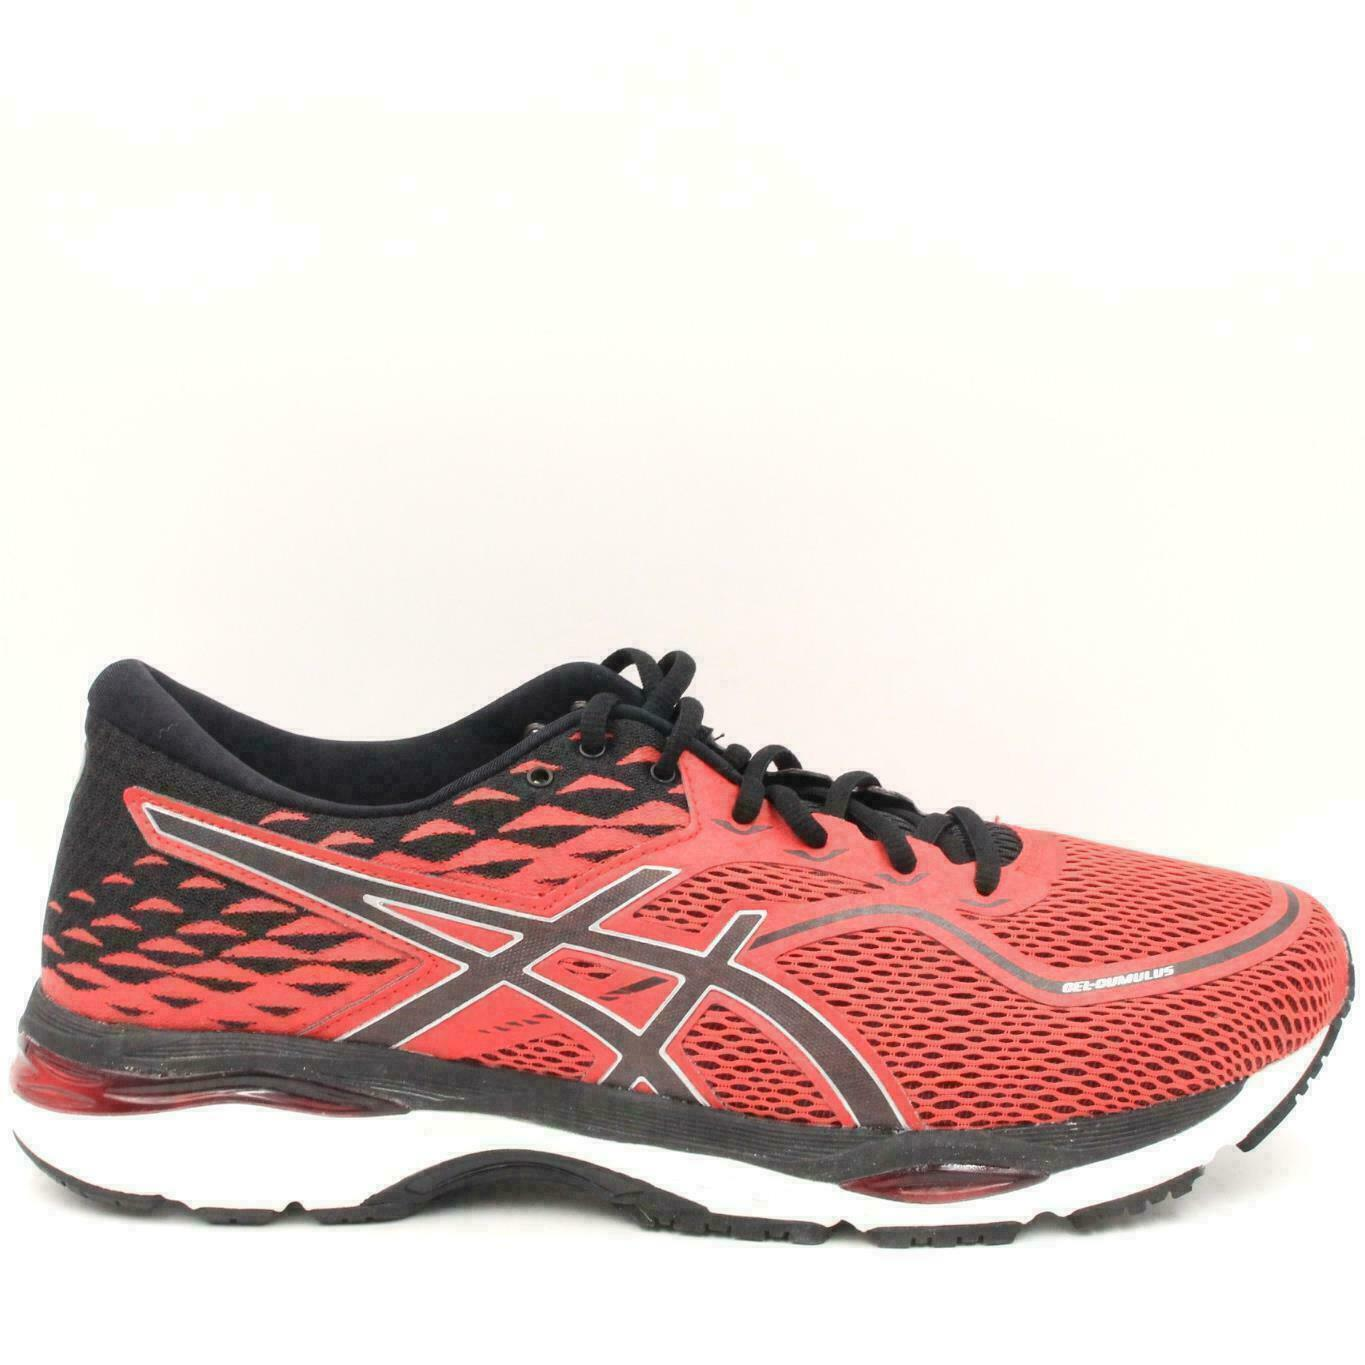 ASICS ASICS Men's Gel Nimbus 18 Running Shoe, RedBlackSilver, 10 D(M) US